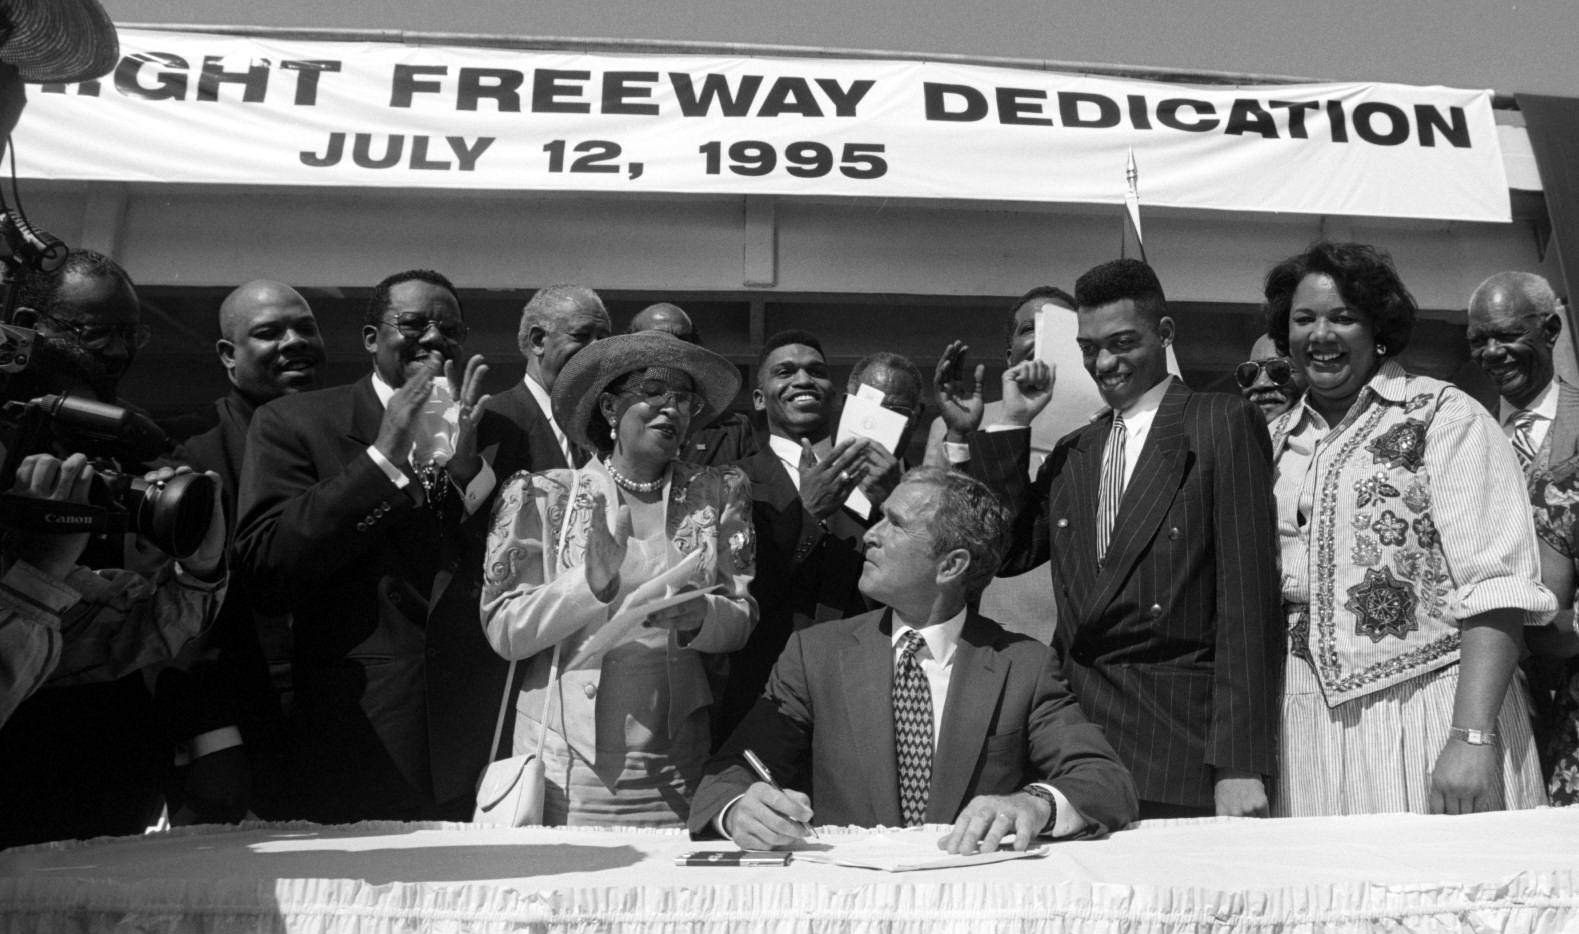 Gov. George W. Bush finishes the ceremonial bill signing during the official dedication of the new S. M. Wright Freeway in honor of the late Rev. Dr. Sylvester M. Wright of the People's Missionary Baptist Church in Dallas in 1995. The section of freeway is located on U.S. Highway 175 just south of downtown Dallas.